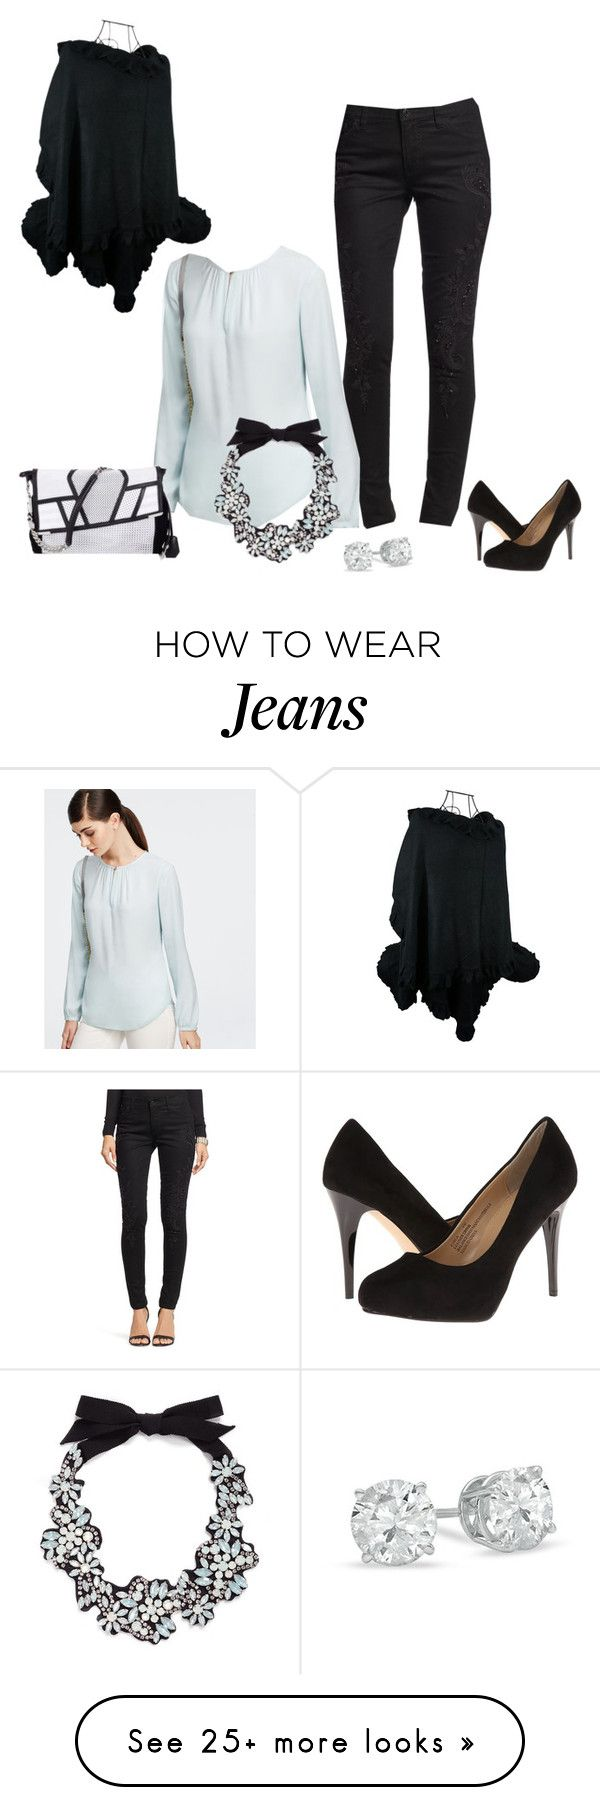 """""""Black Embellished Jeans"""" by fattyfox on Polyvore featuring Ann Taylor, J.Crew, rsvp, Zales, women's clothing, women's fashion, women, female, woman and misses"""